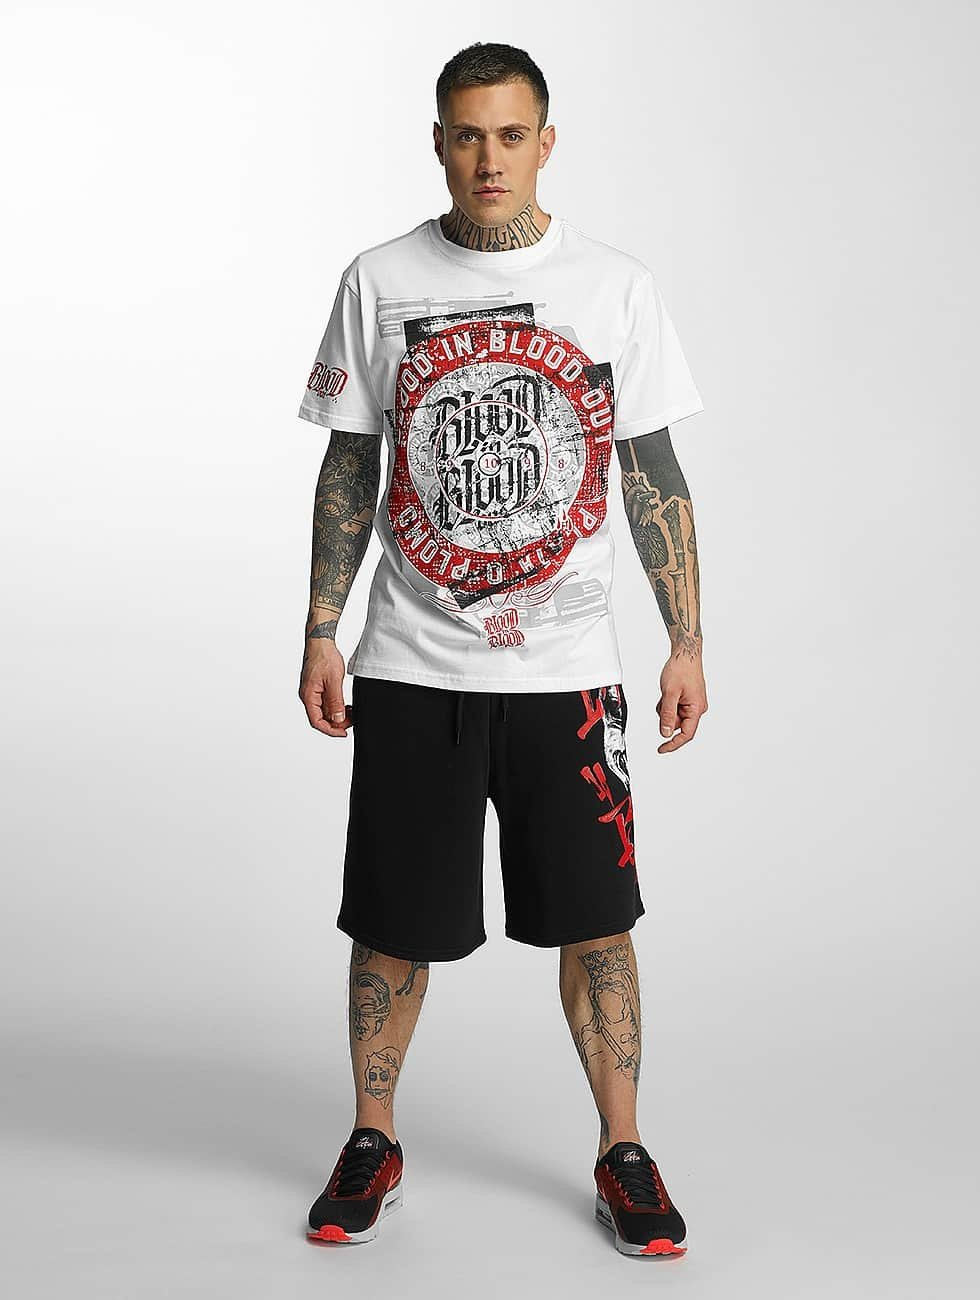 Blood In Blood Out T-Shirt Out Plata O Plomo blanc